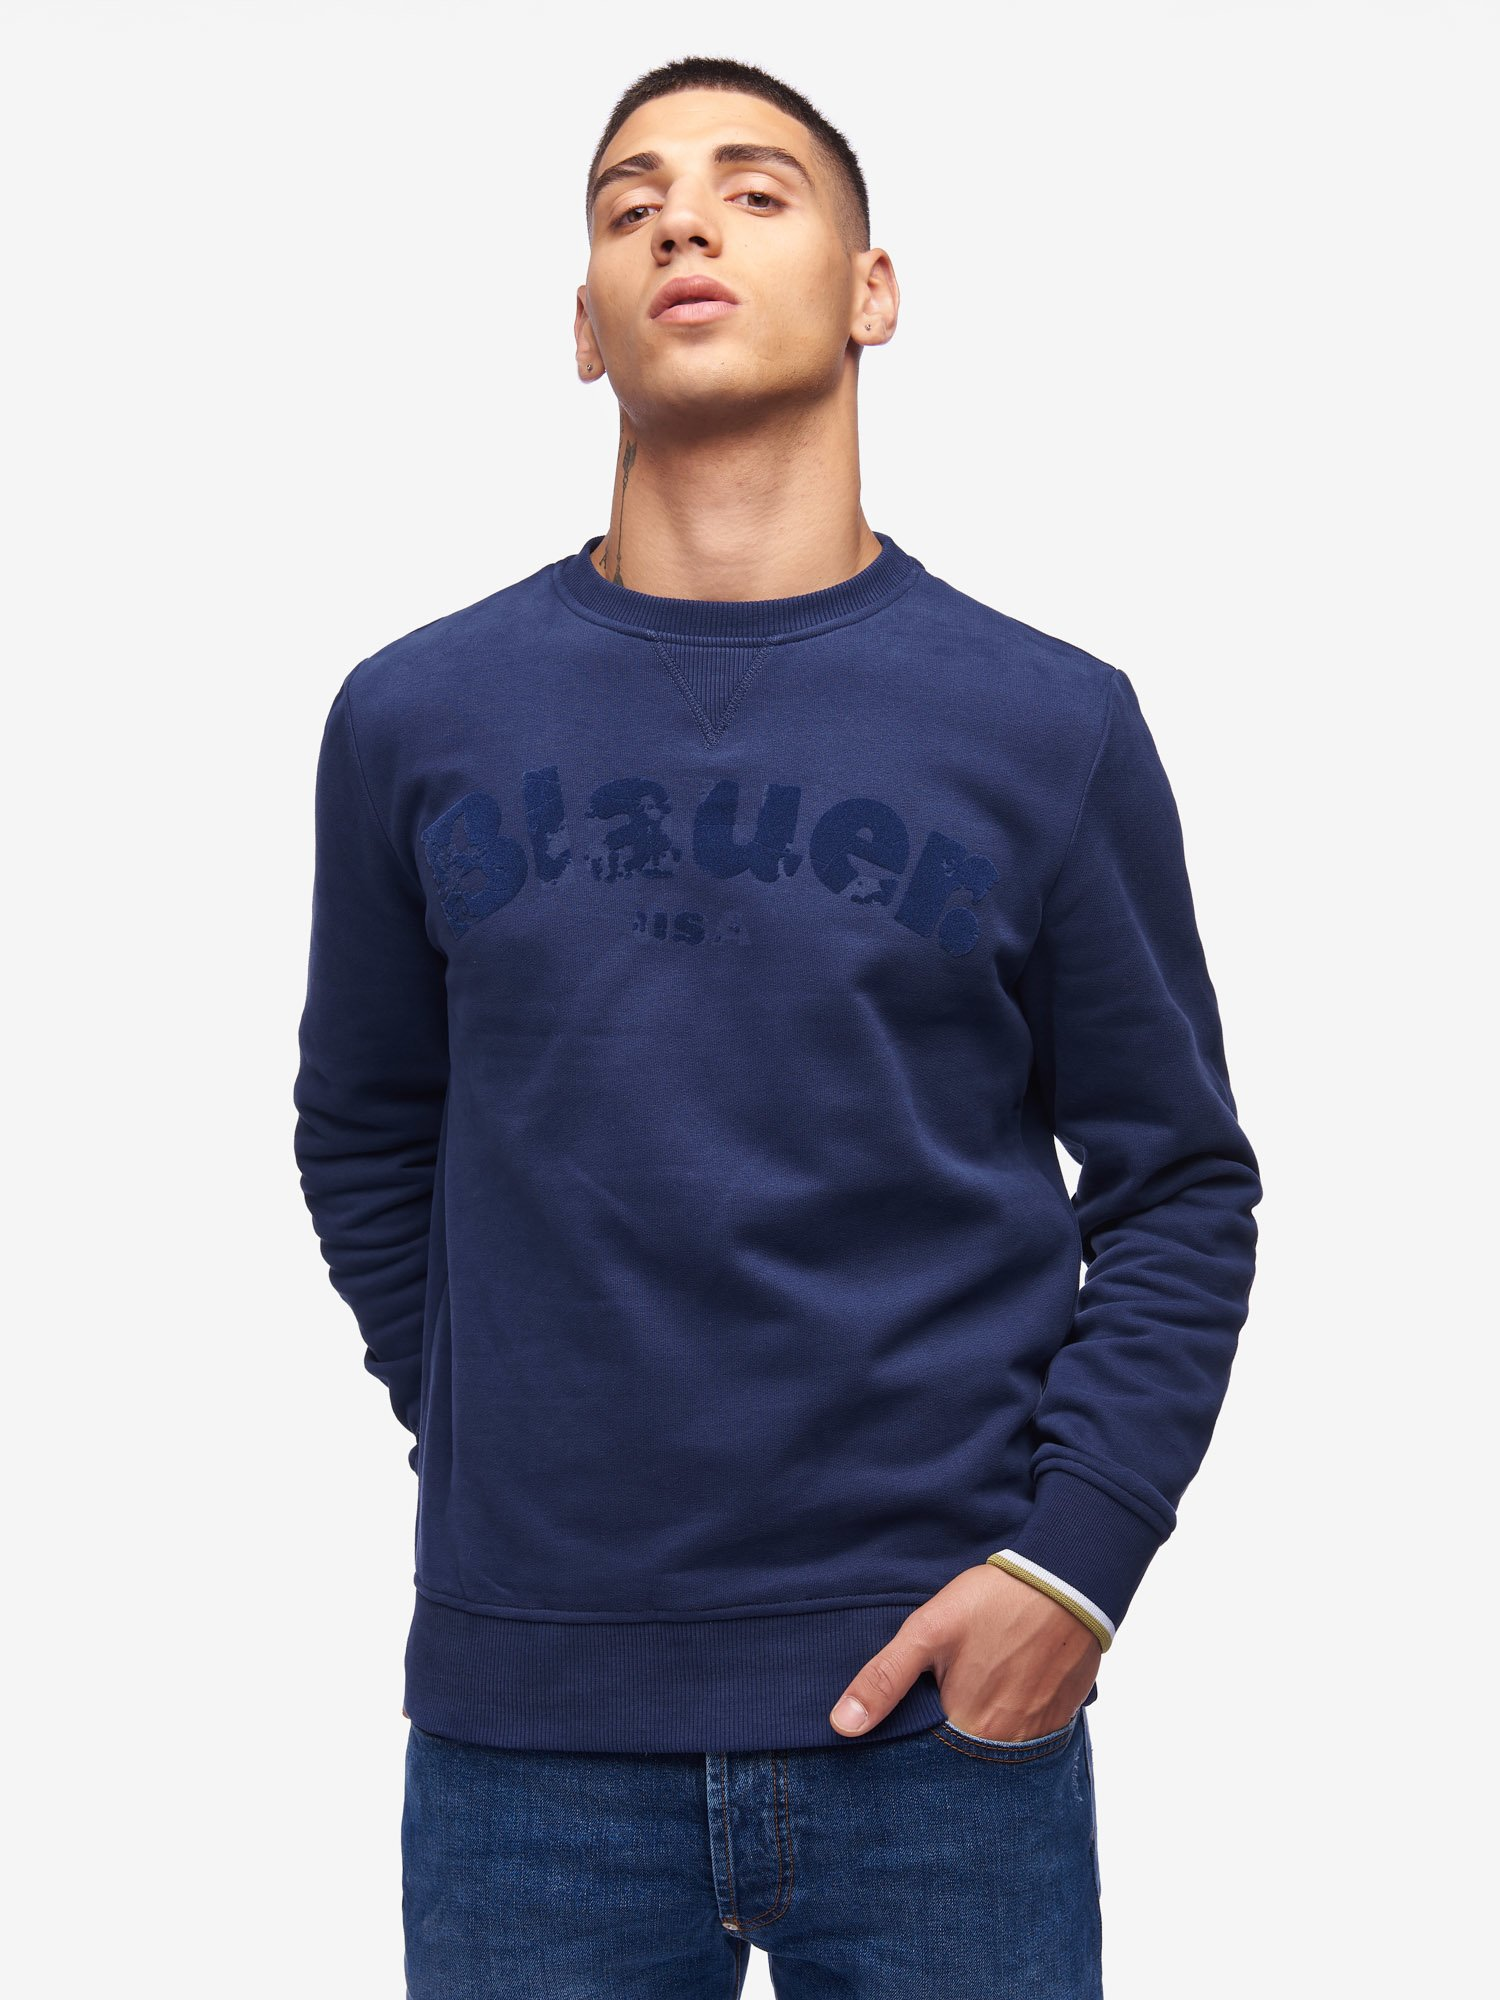 SOFT CREW NECK SWEATSHIRT - Blauer